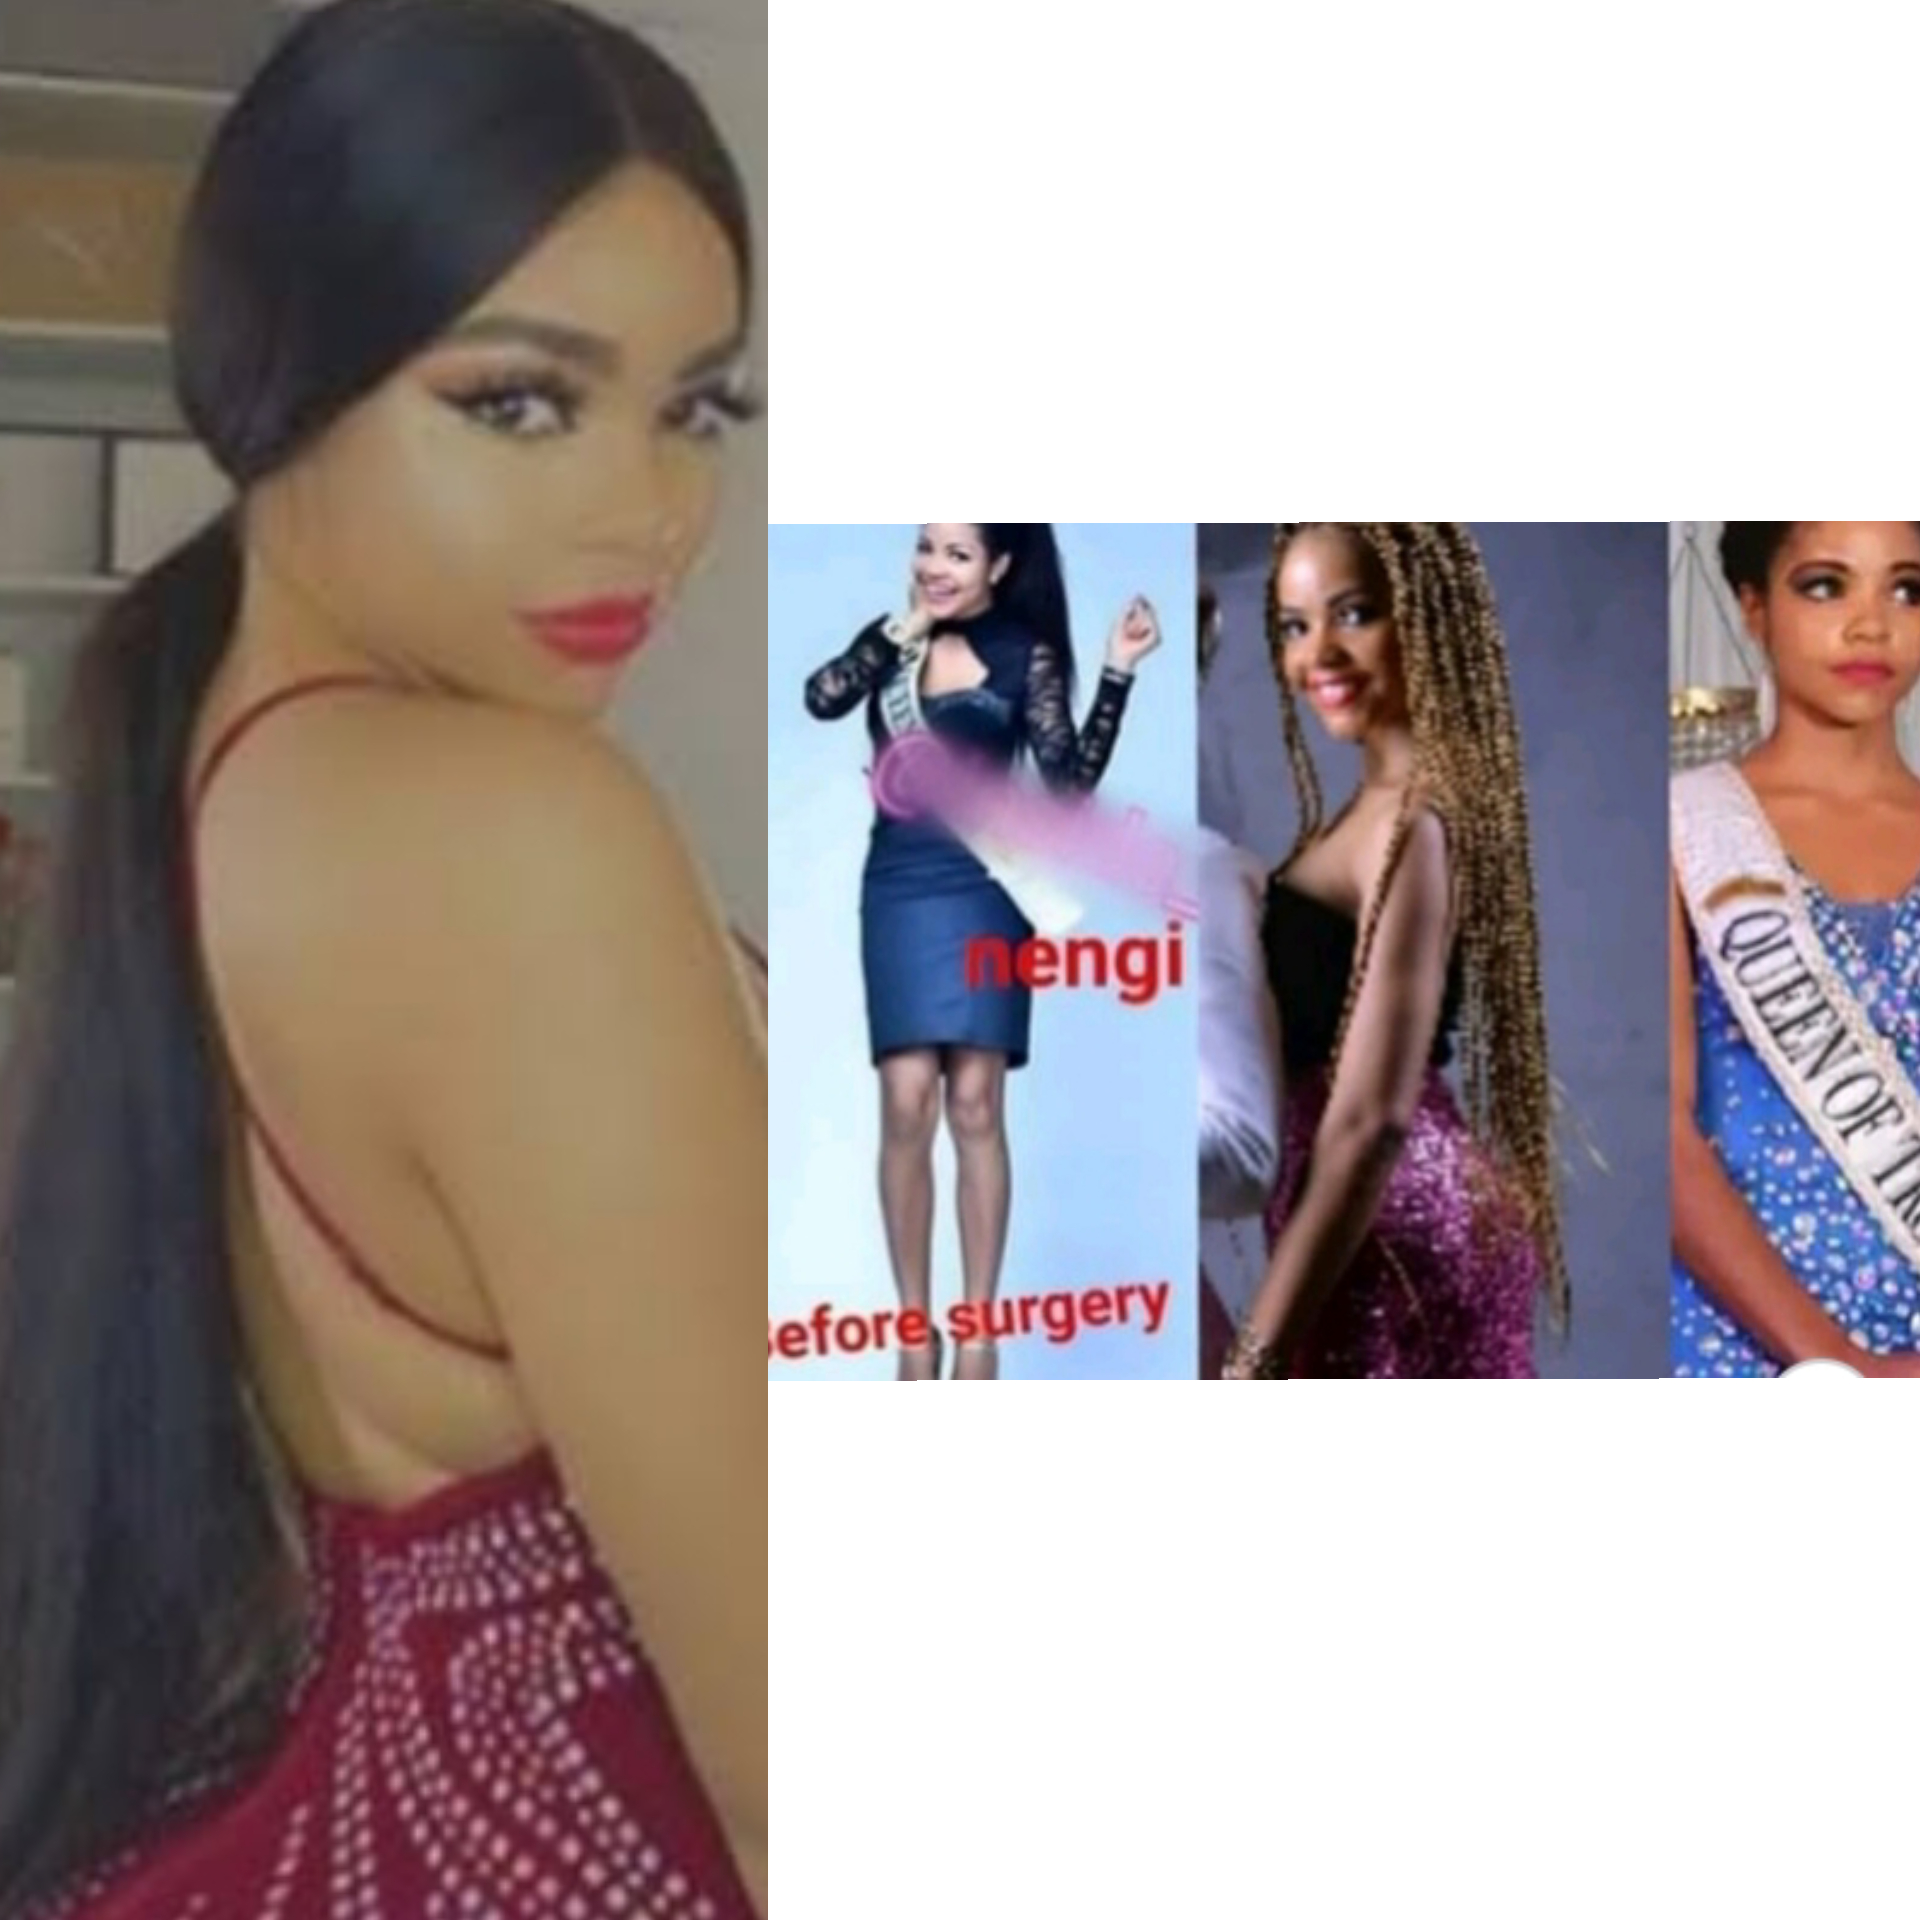 BBNaija: Nengi Accused Of Doing Body Enhancement Surgery As Her Old Photos Surfaced